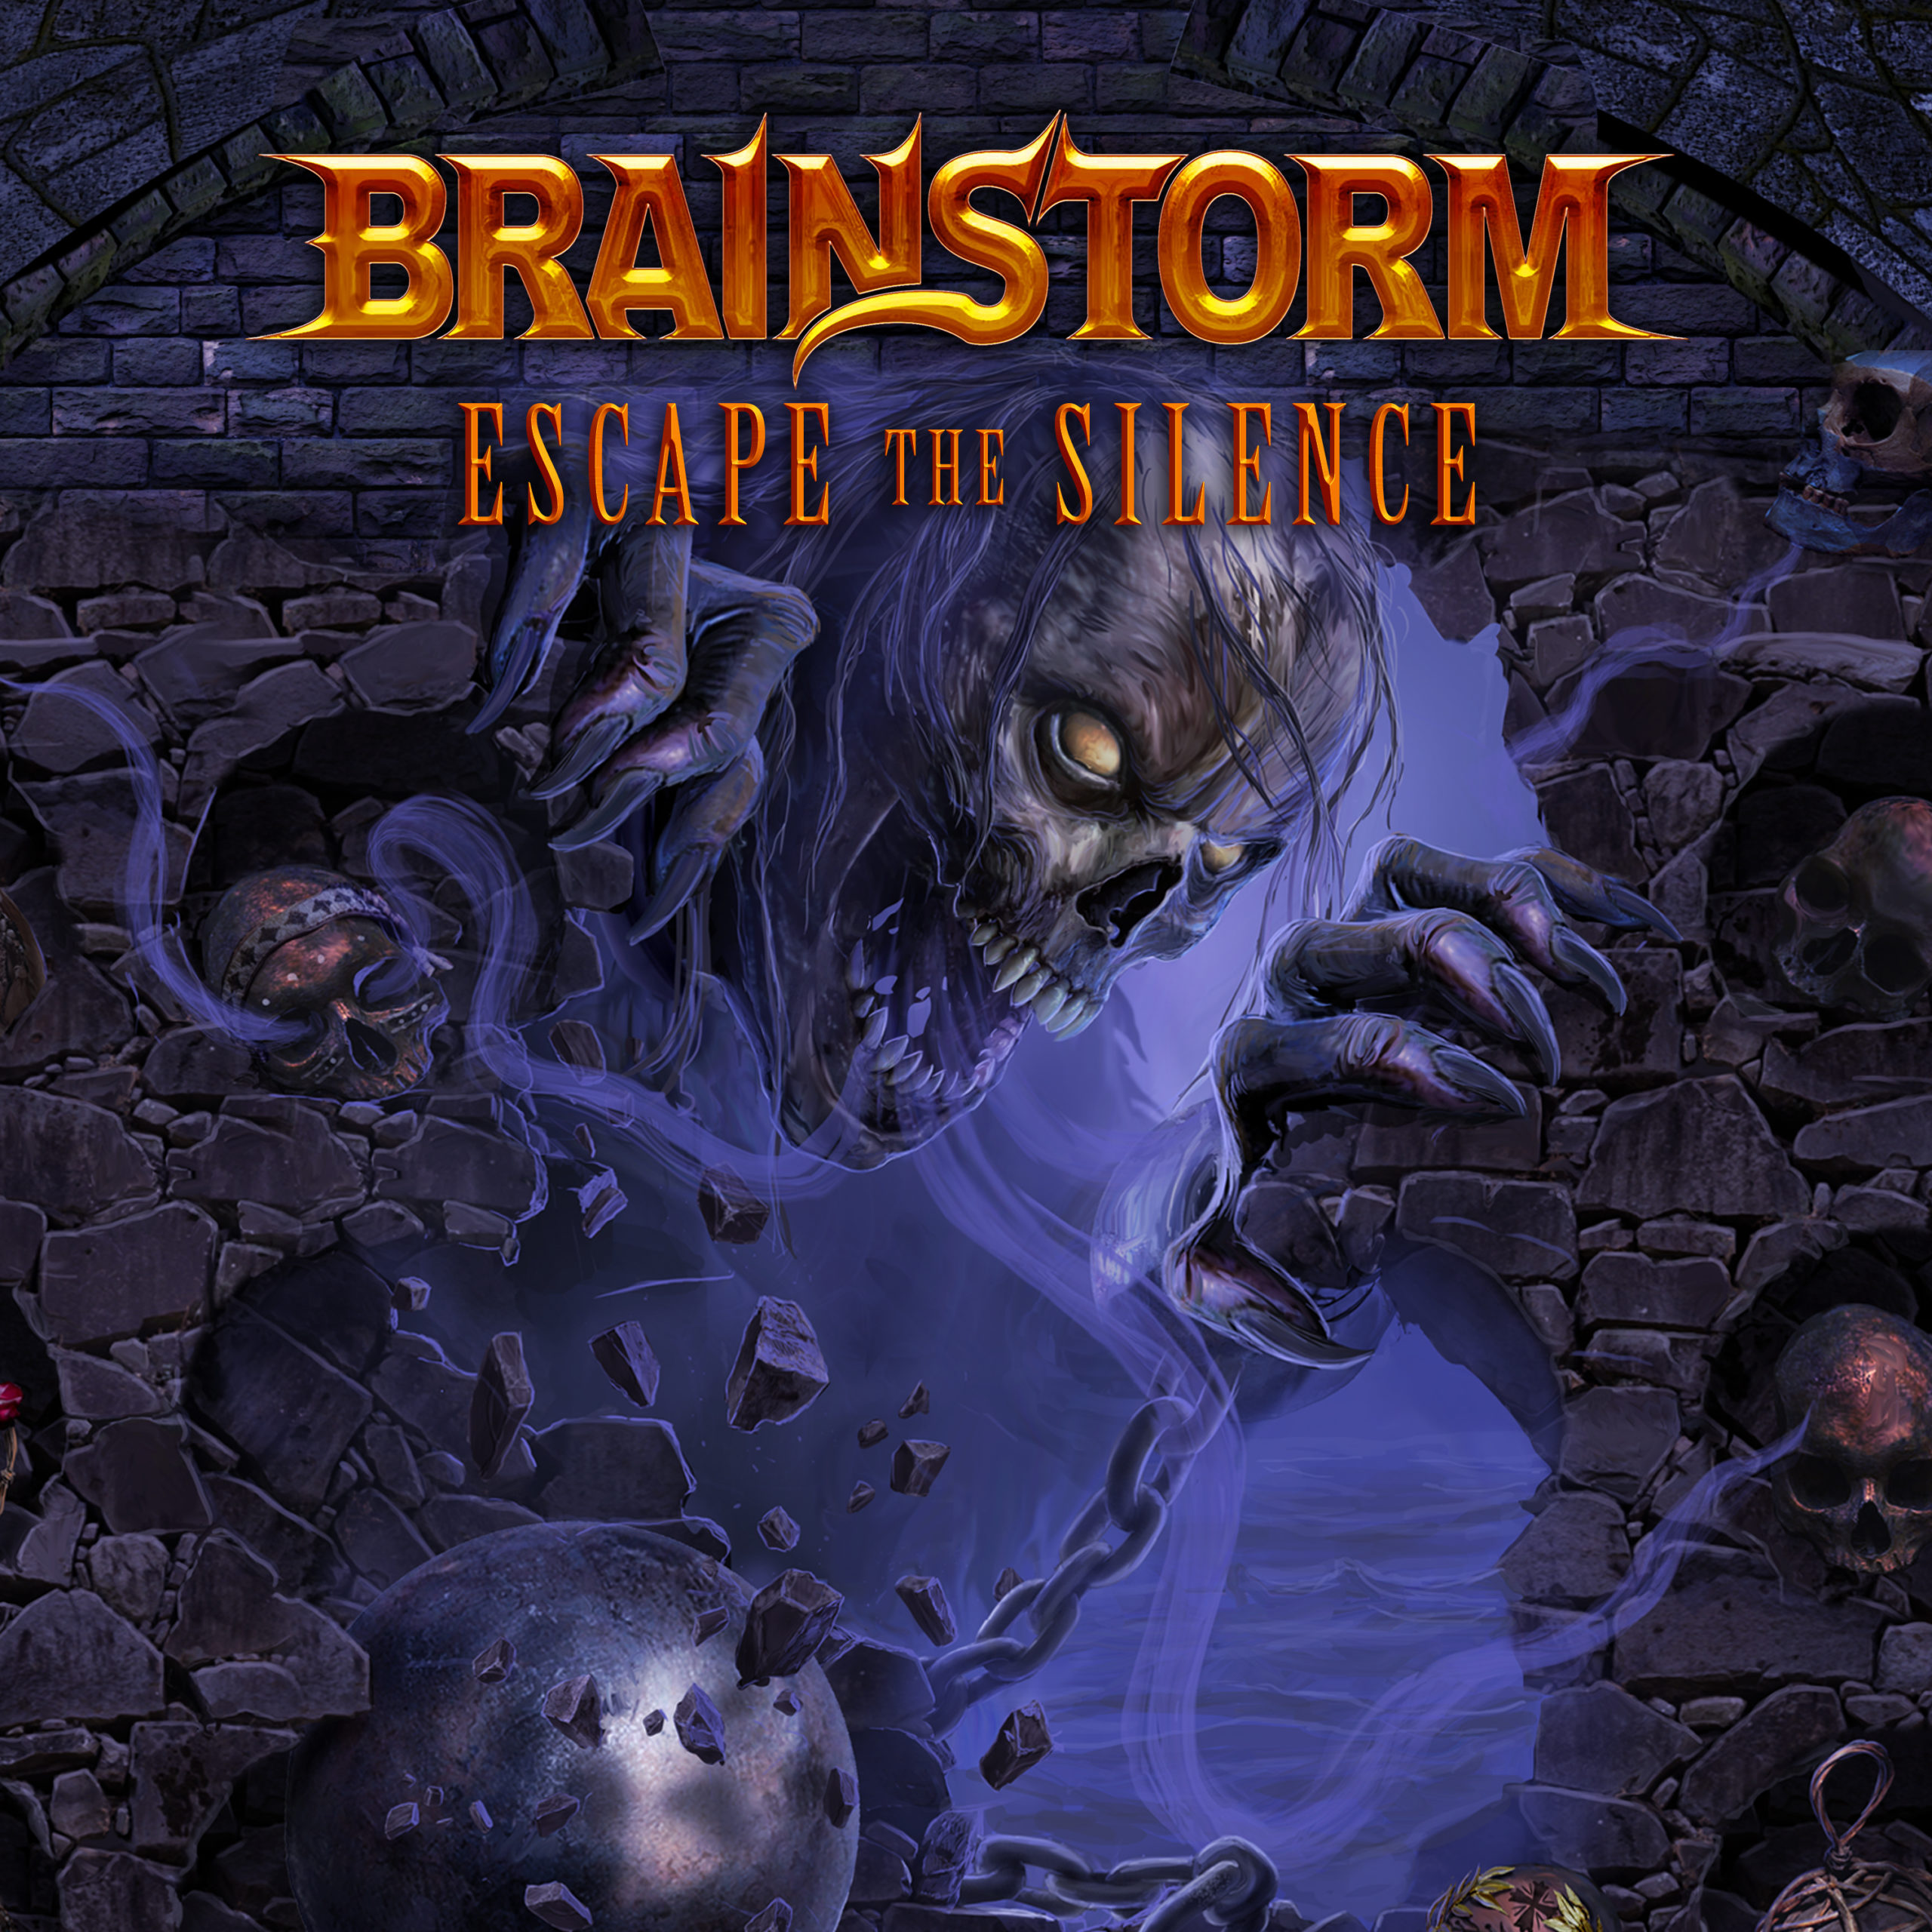 BRAINSTORM «ESCAPE THE SILENCE»